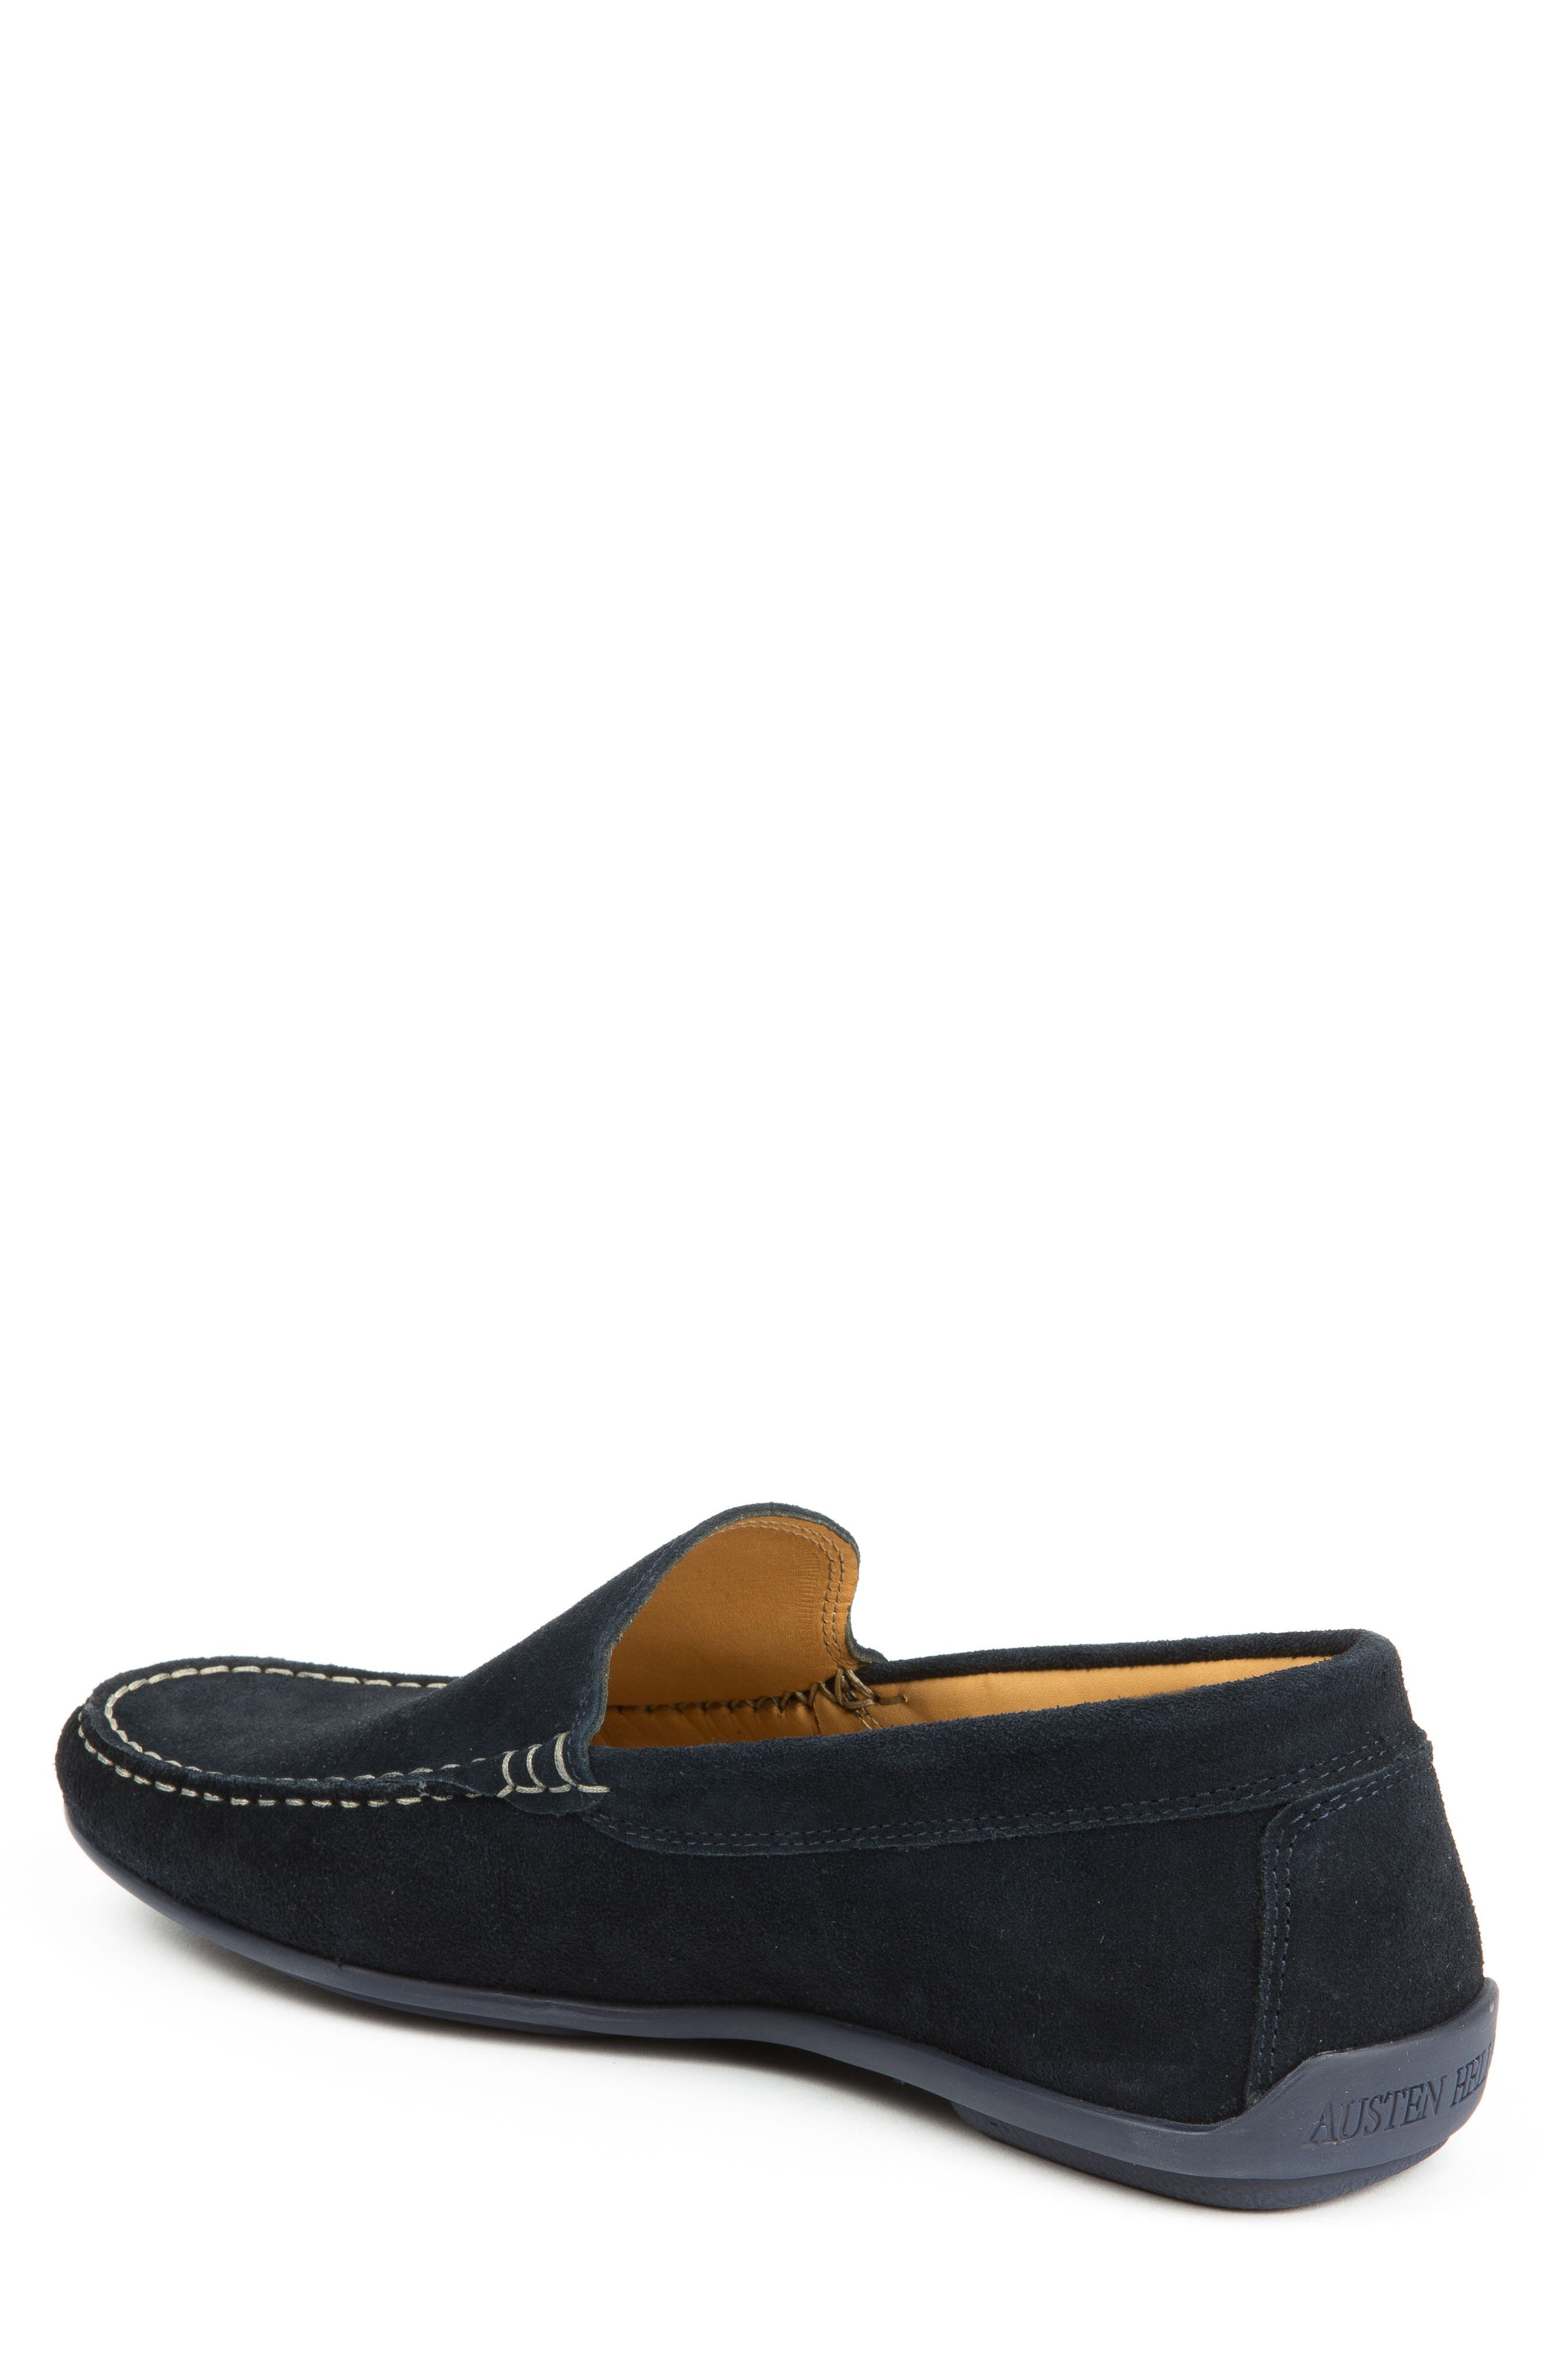 'Meridians' Loafer,                             Alternate thumbnail 3, color,                             410